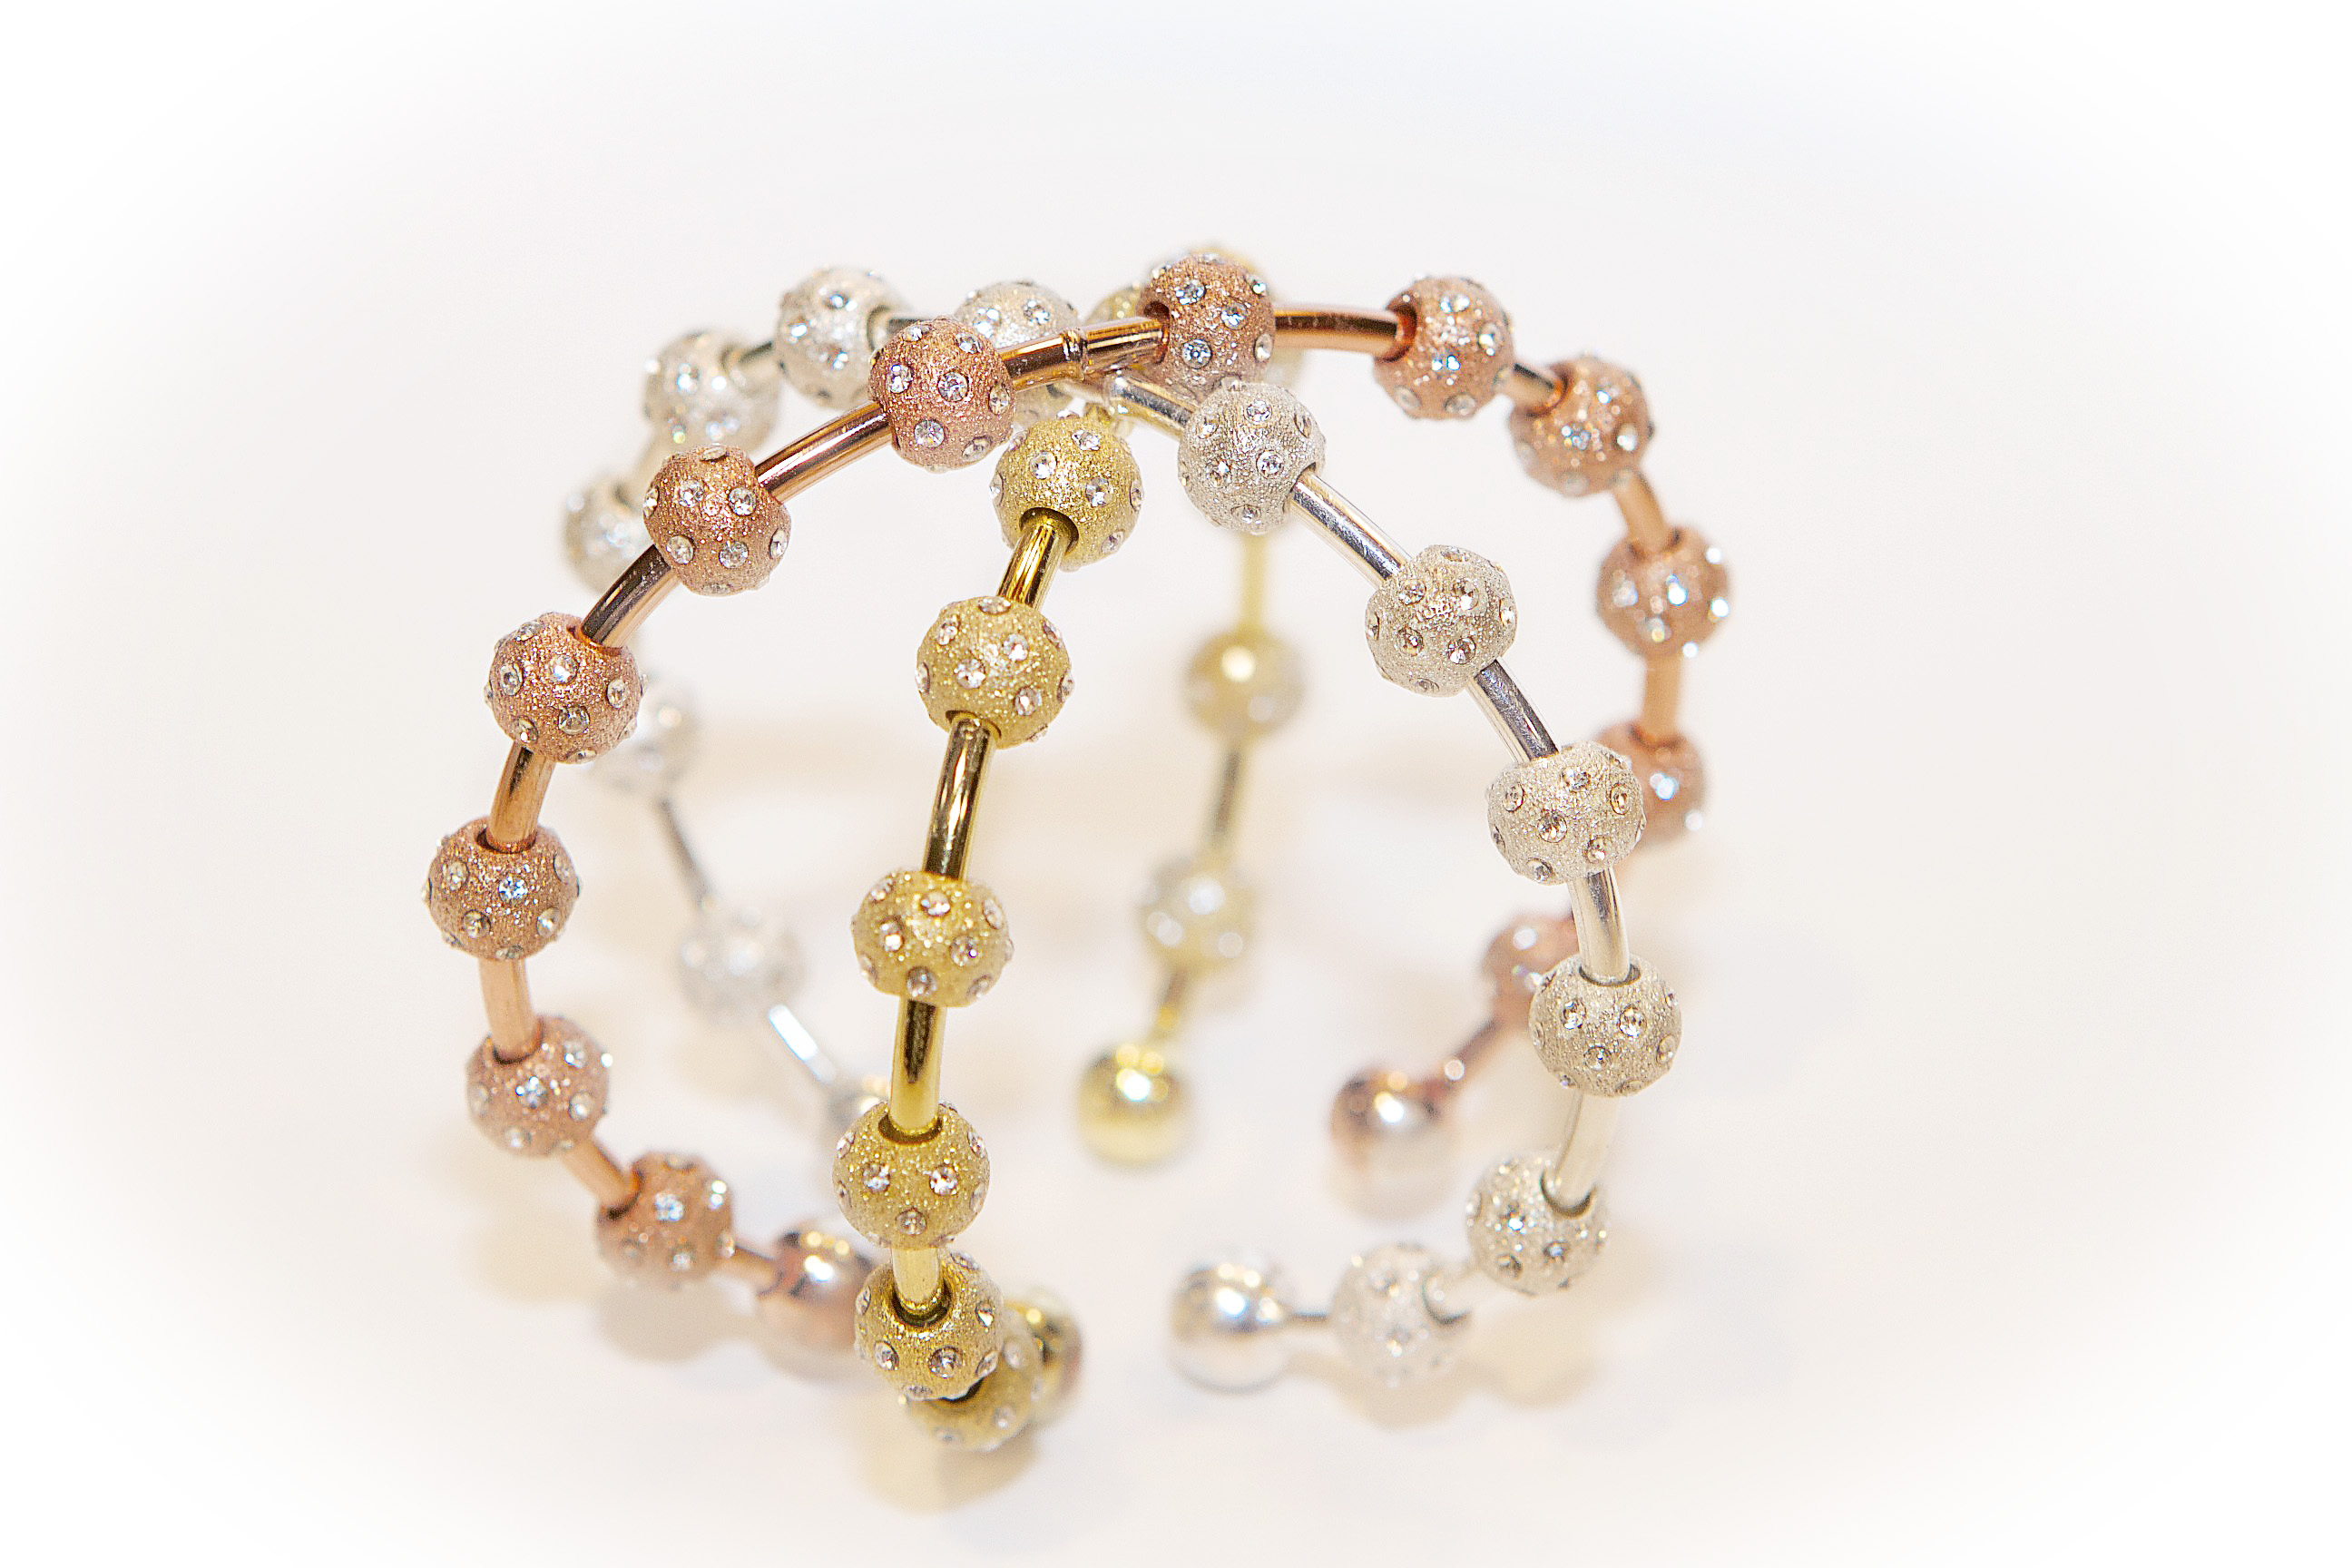 Sexy Stack of New Crystal Journal Bracelets by Chelsea Charles